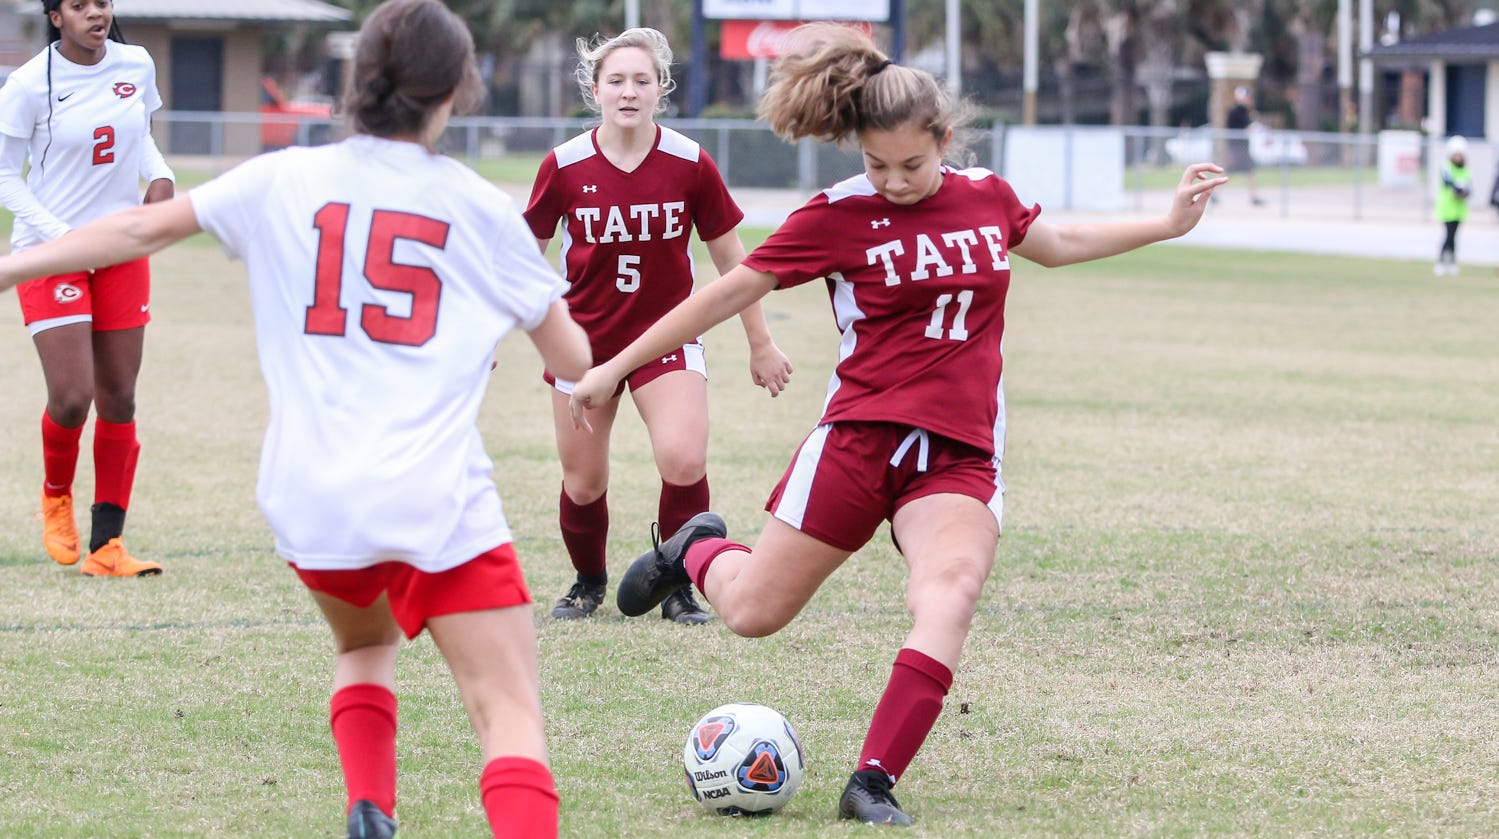 Tate's Camille Macks (11) passes the ball against Clinton at Gulf Breeze High School on Saturday, December 15, 2018.